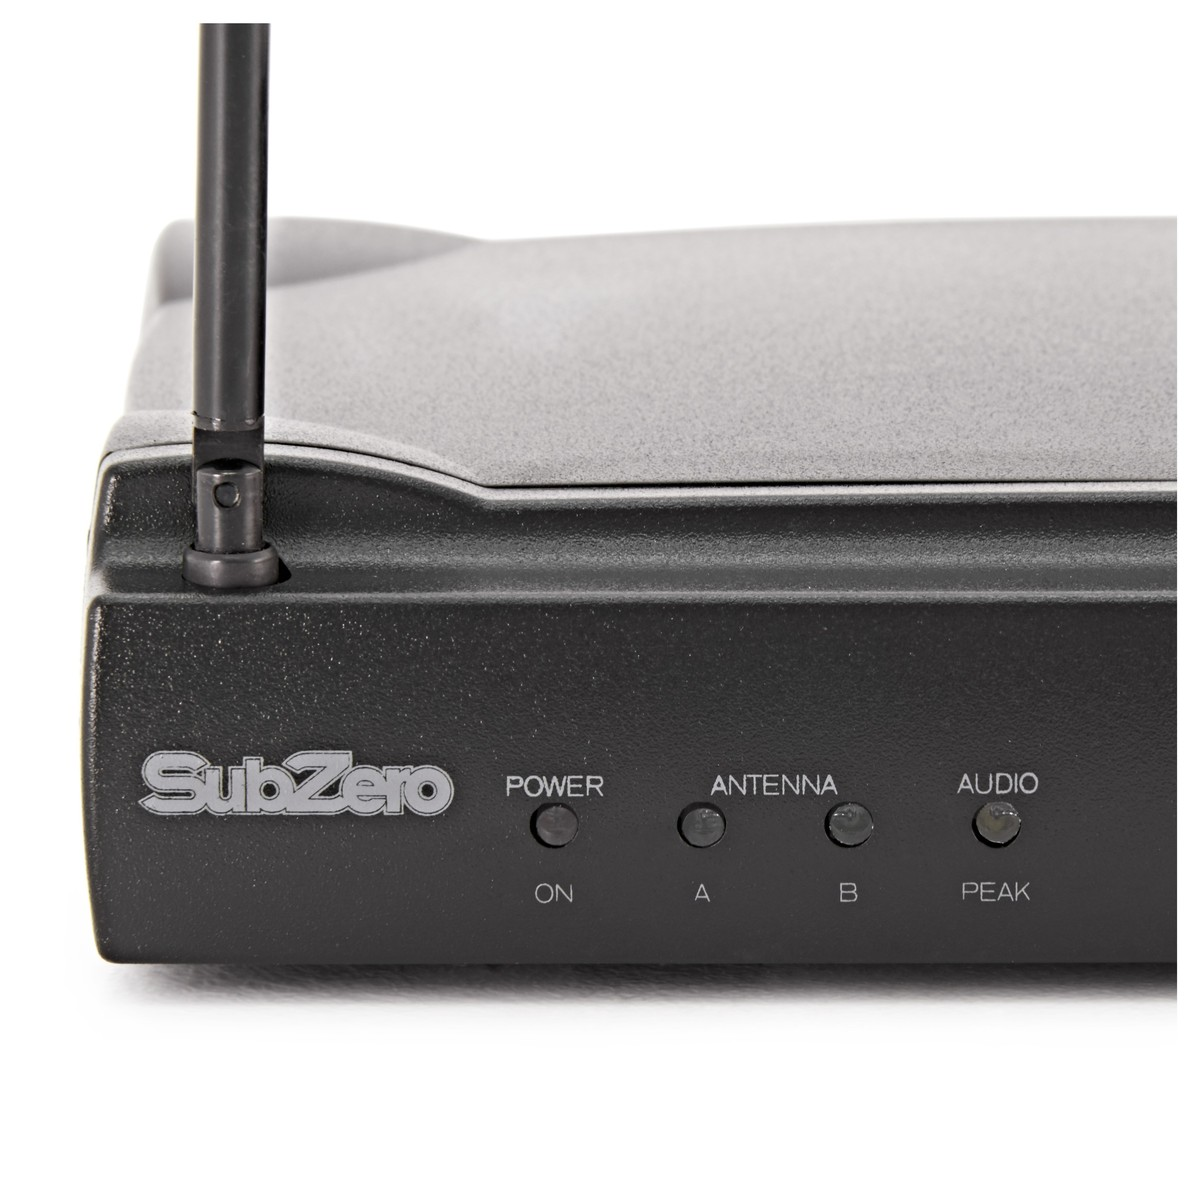 subzero szw 20 lavalier and headset wireless microphone system at gear4music. Black Bedroom Furniture Sets. Home Design Ideas